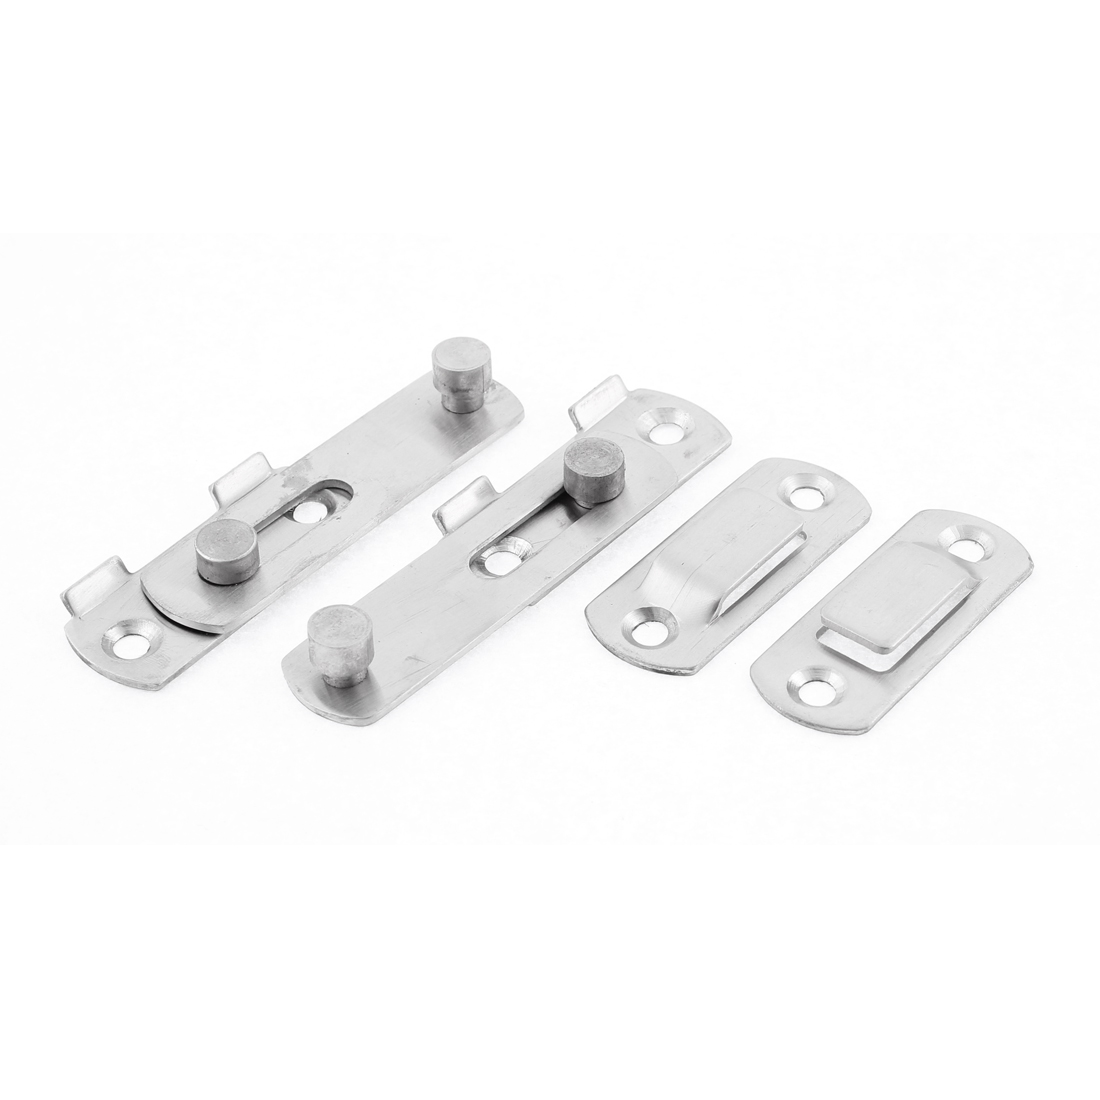 Home Metal Safety Door Chain Restrictor Lock Guard Latch 70mm Length 2 Pcs